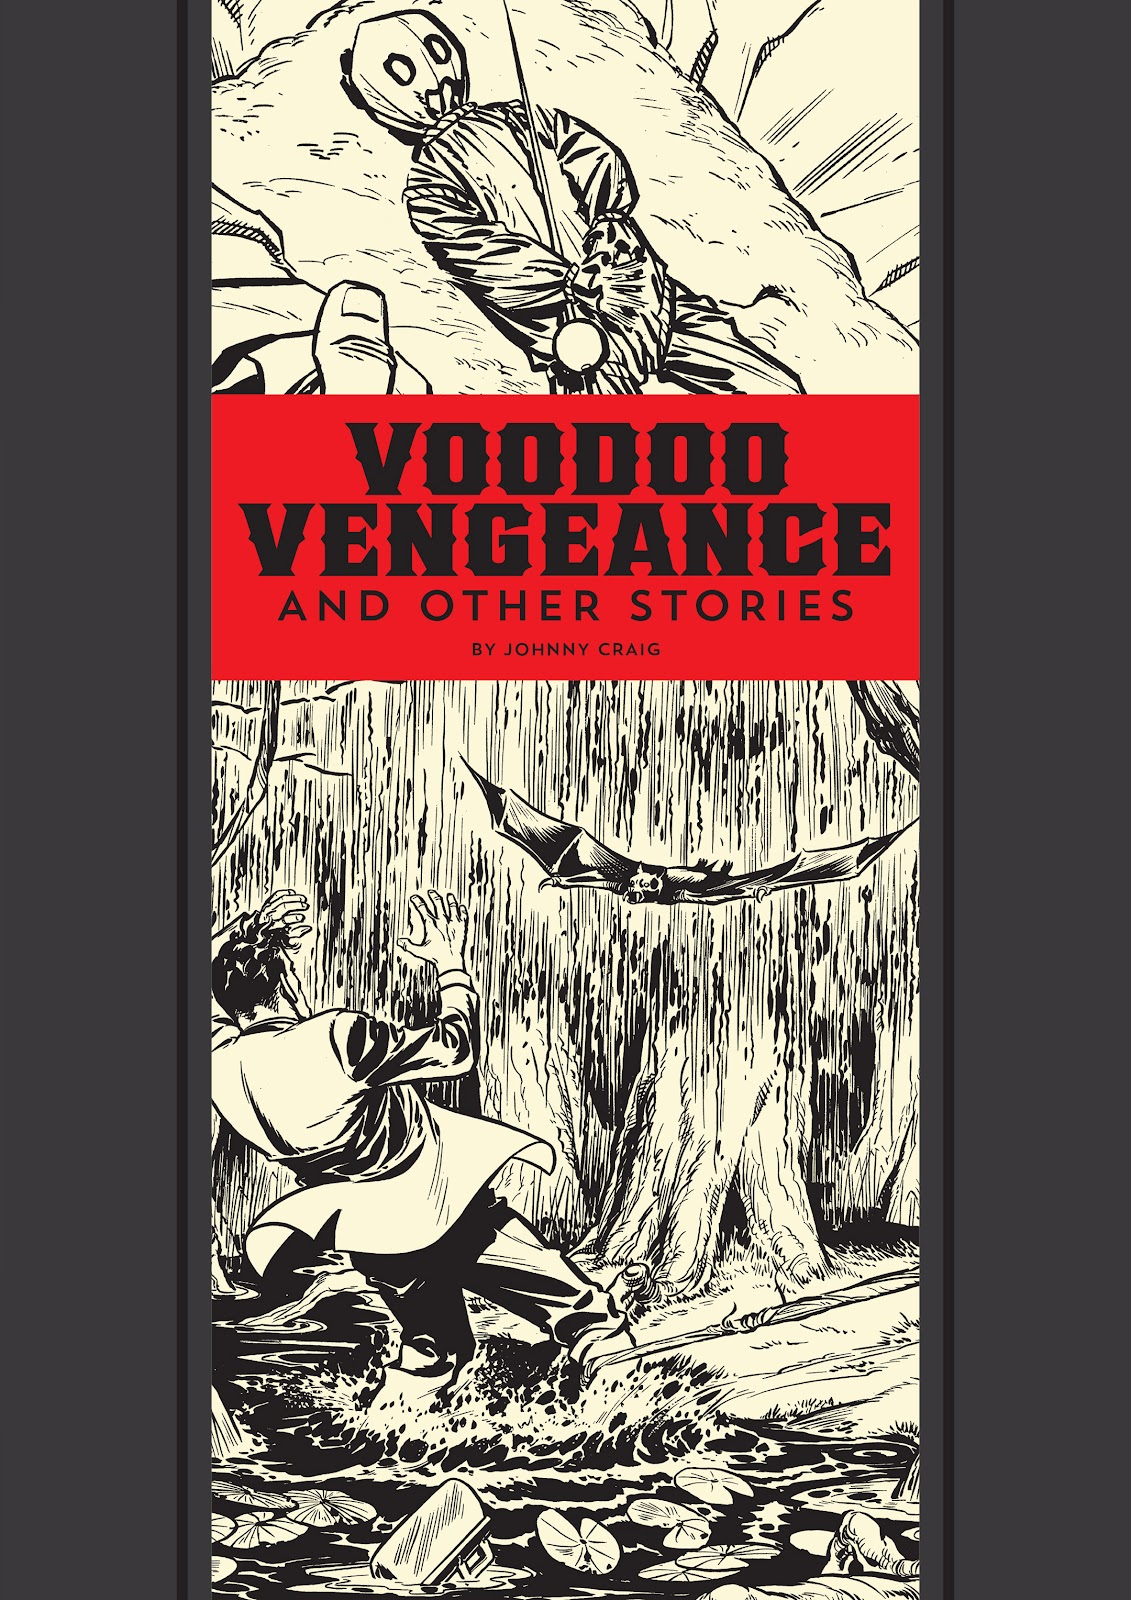 Read online Voodoo Vengeance and Other Stories comic -  Issue # TPB (Part 1) - 1